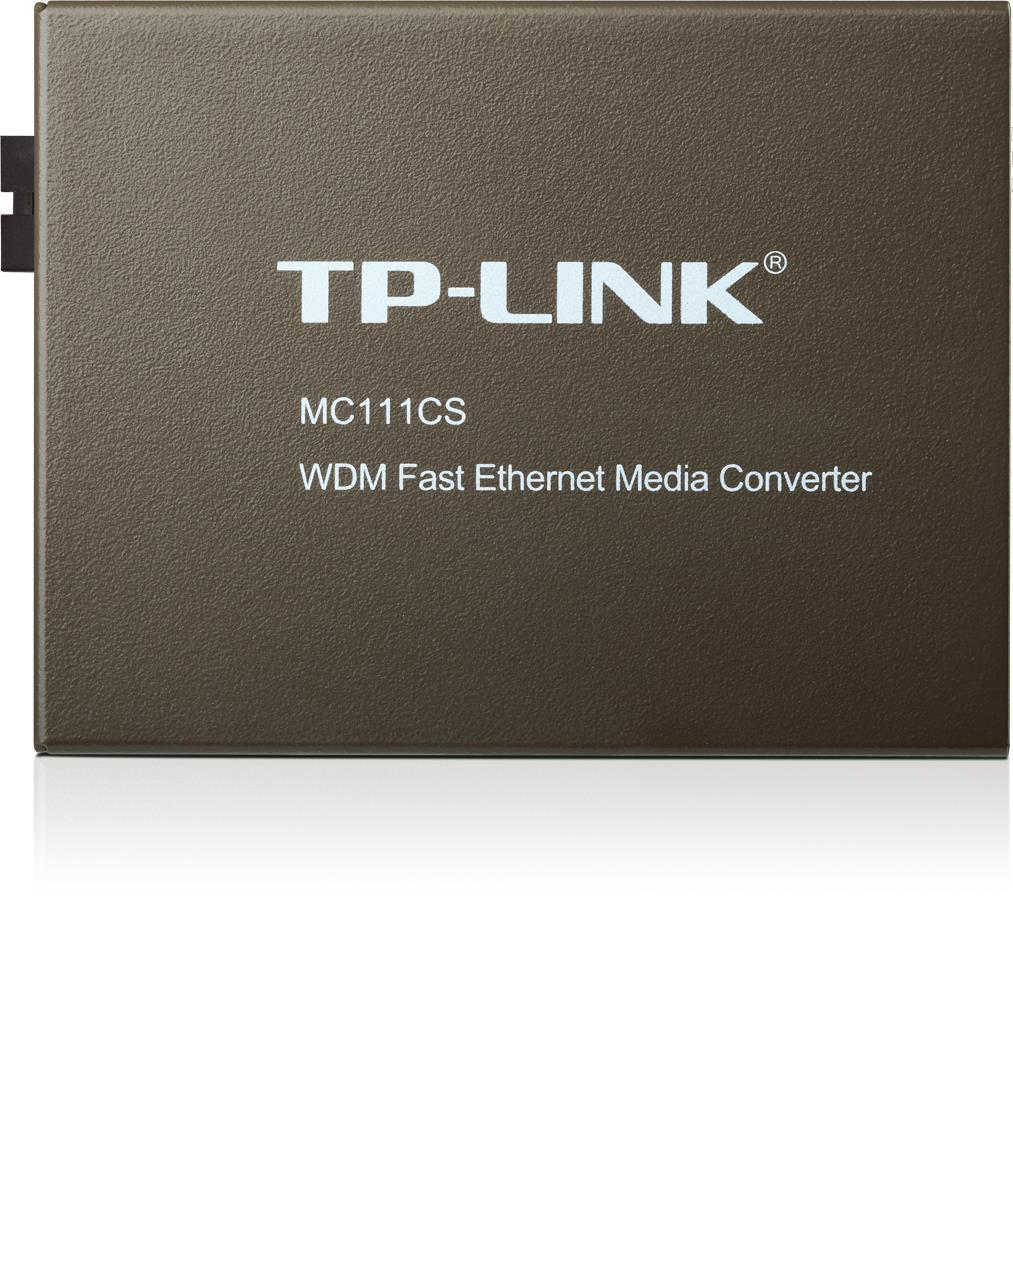 TP-LINK MC111CS Transceiver/Media Converter